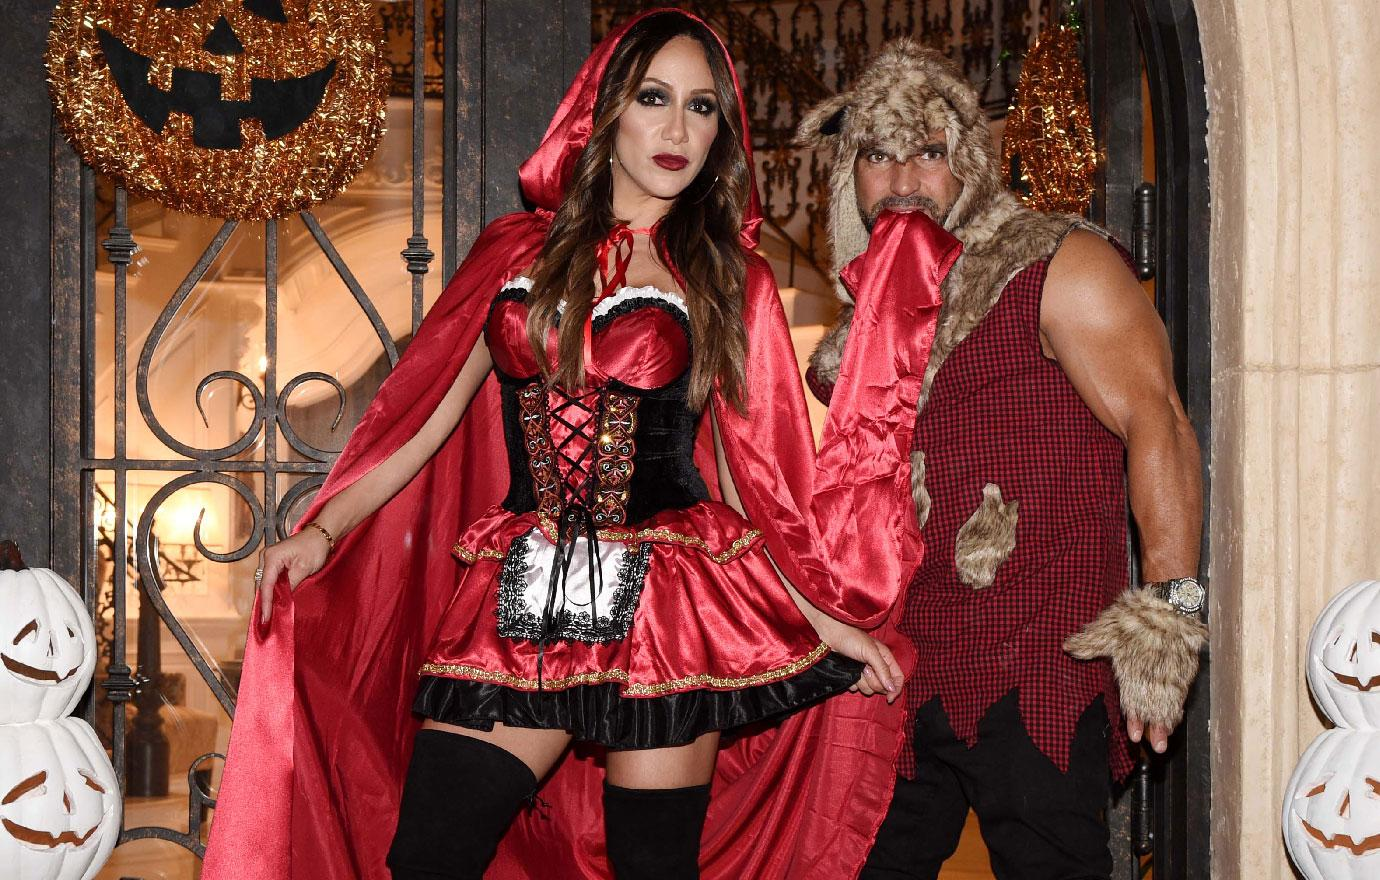 RHONJ Melissa Gorga Throws Halloween Party Photos